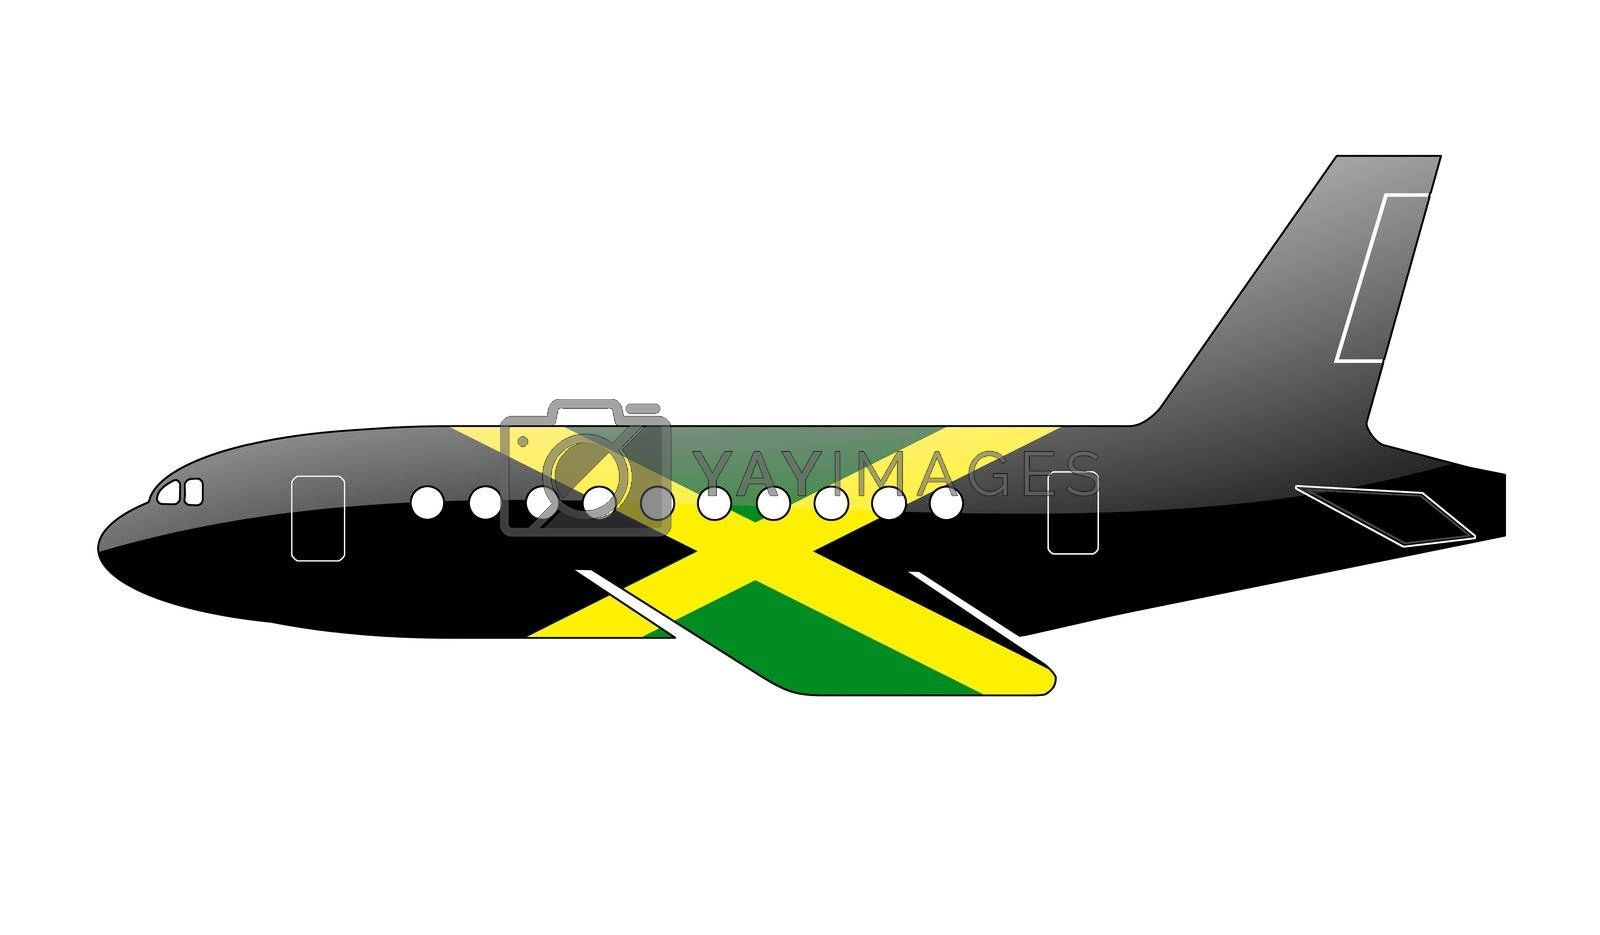 The Jamaica flag painted on the silhouette of a aircraft. glossy illustration